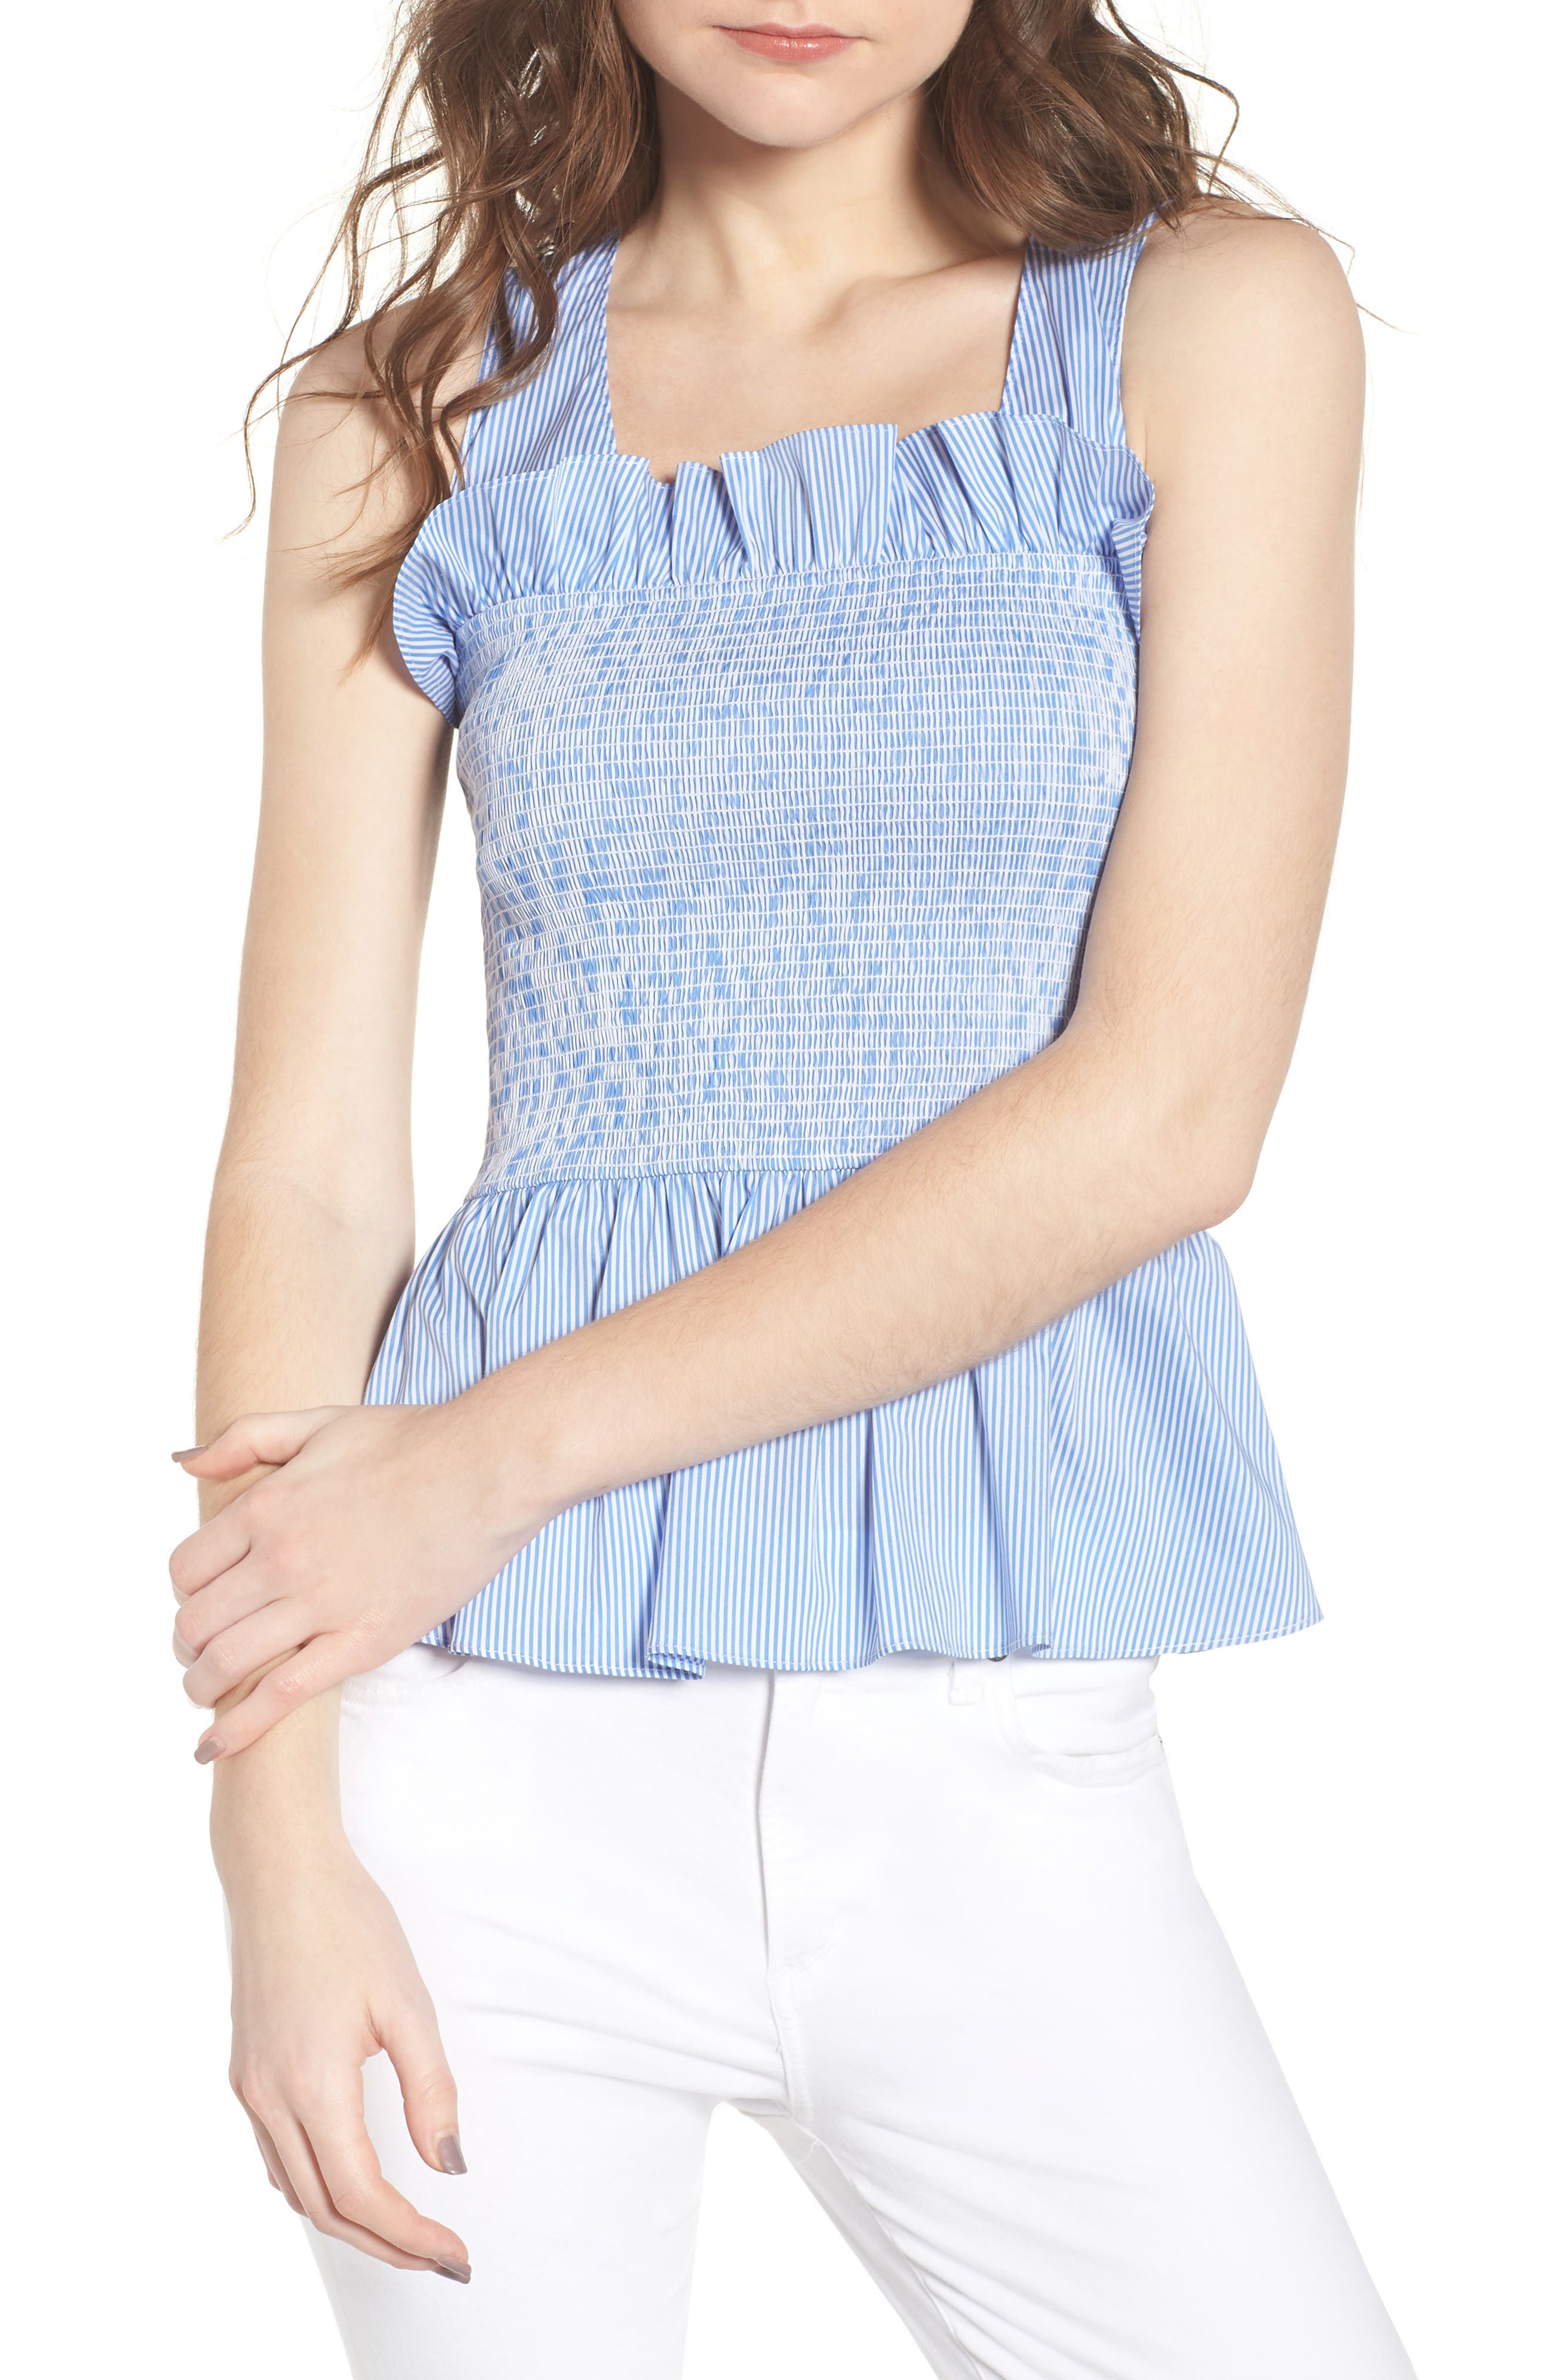 Chelsea28 Smocked Bustier Top